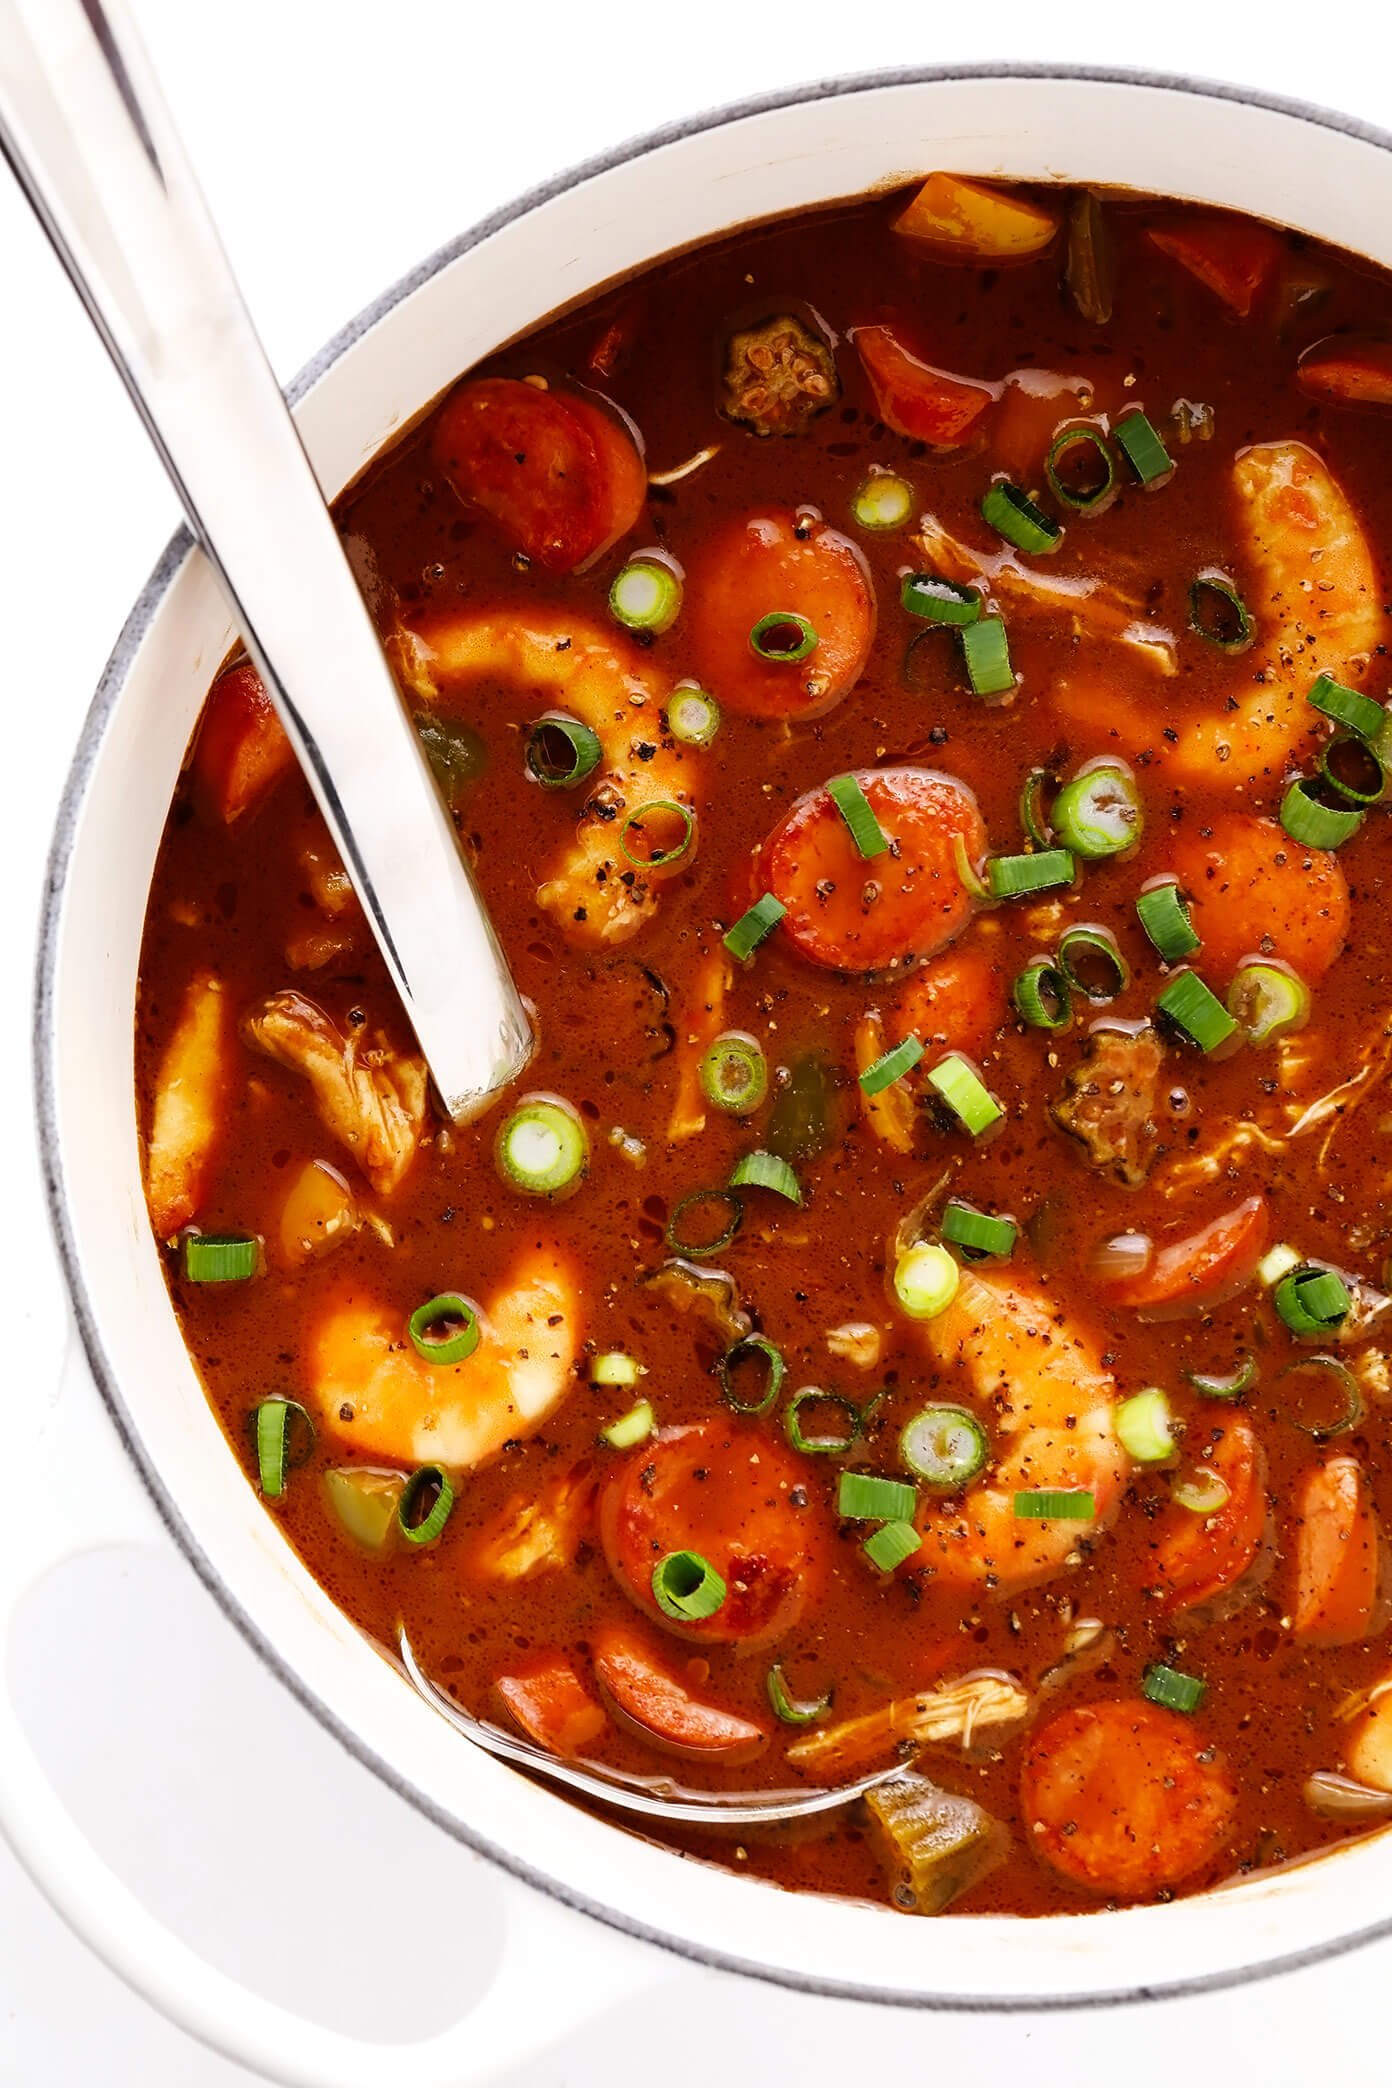 Pot of Chicken, Sausage and Seafood Gumbo